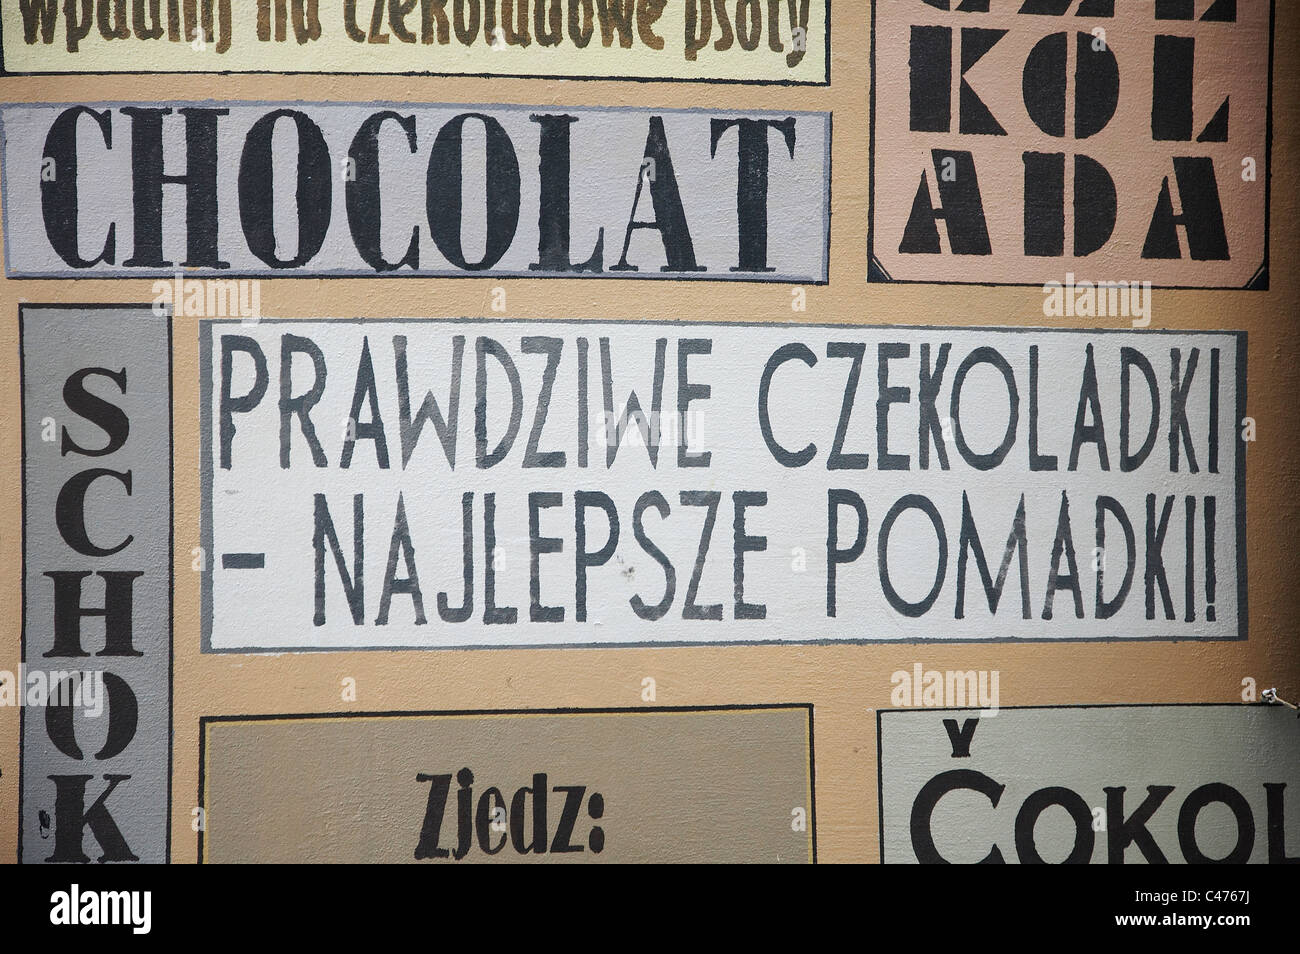 A chocolate menu in many different languages, Poland - Stock Image